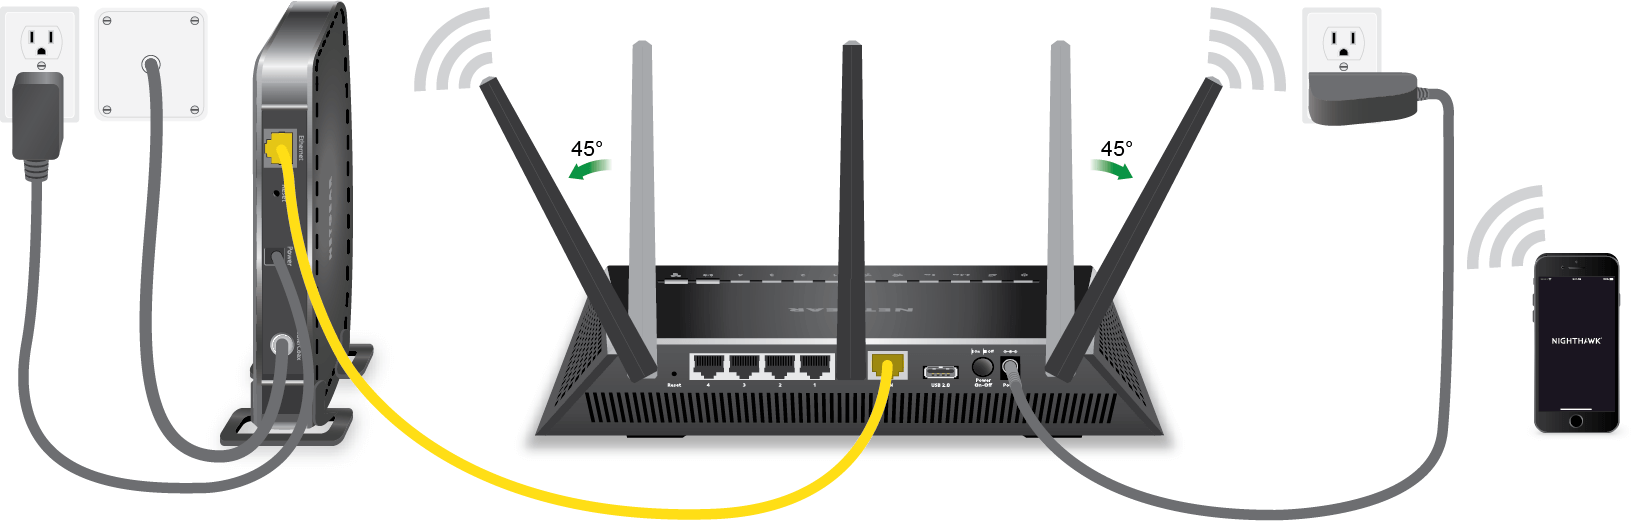 Router not getting internet from modem